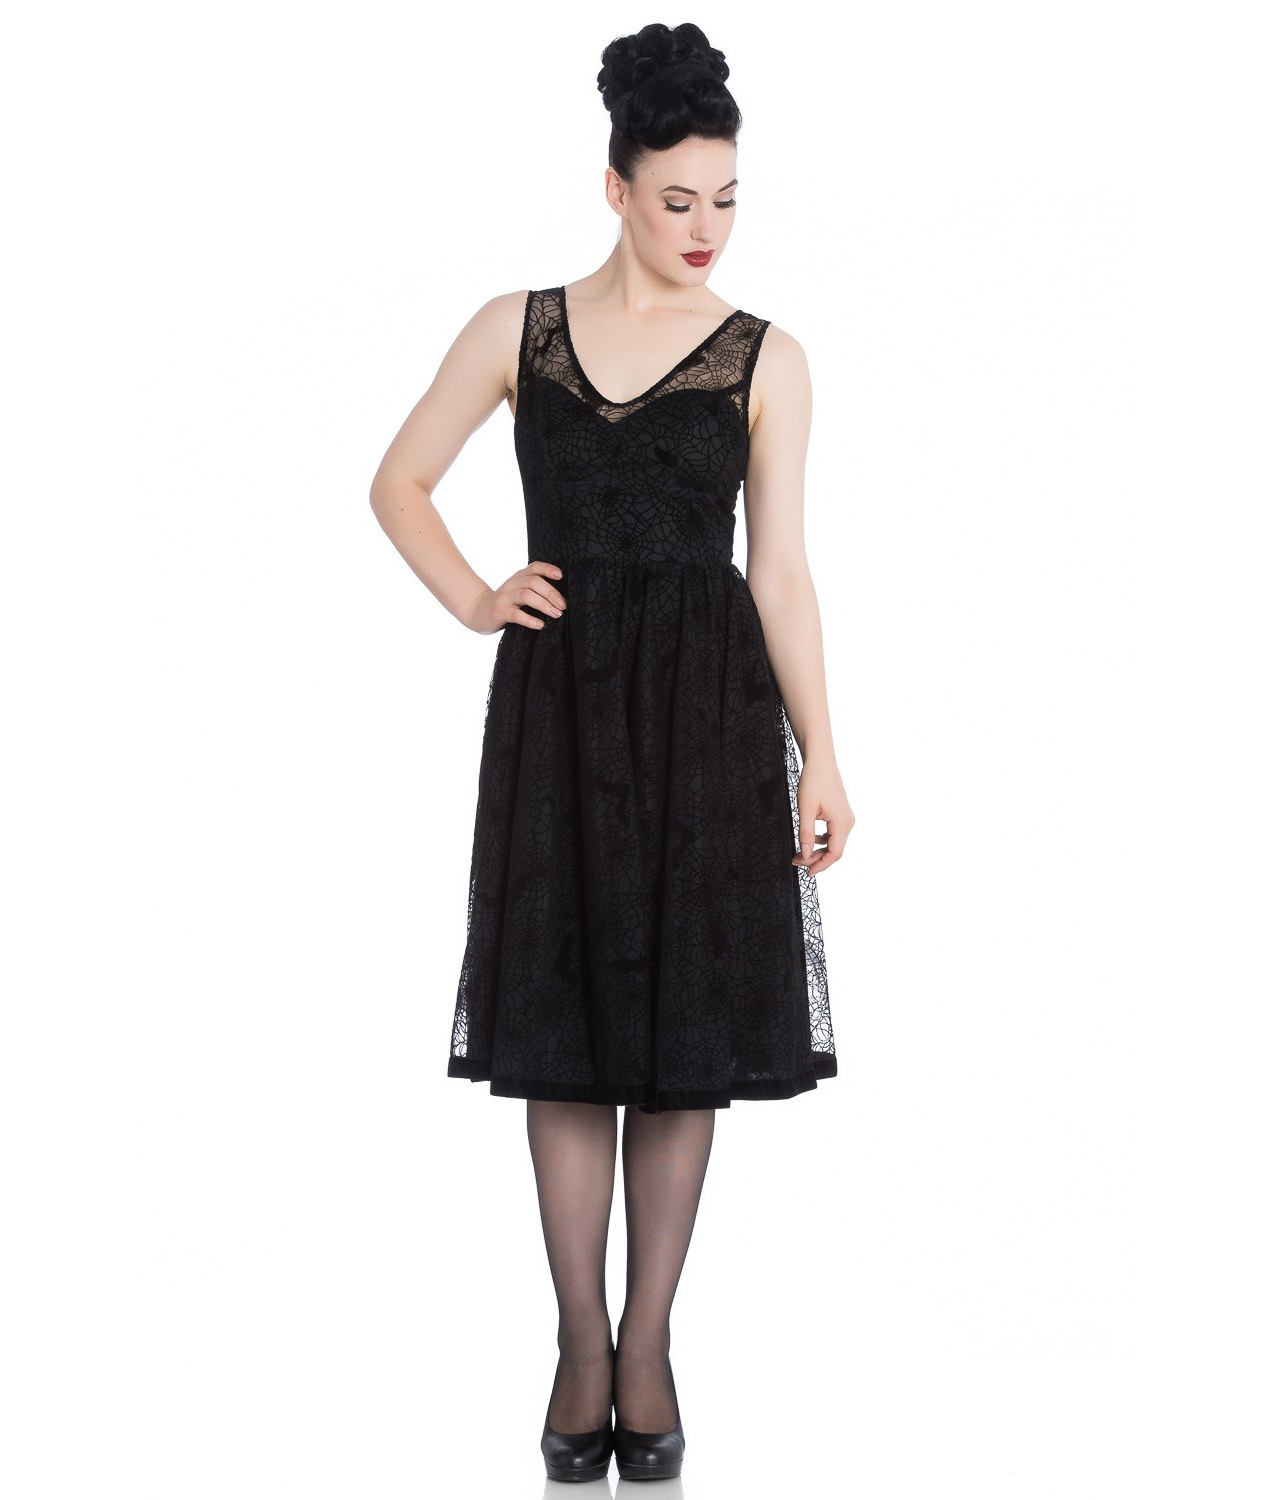 Hell-Bunny-50s-Black-Gothic-Net-Dress-Witchy-AMARANDE-Spiders-Bats-All-Sizes thumbnail 15